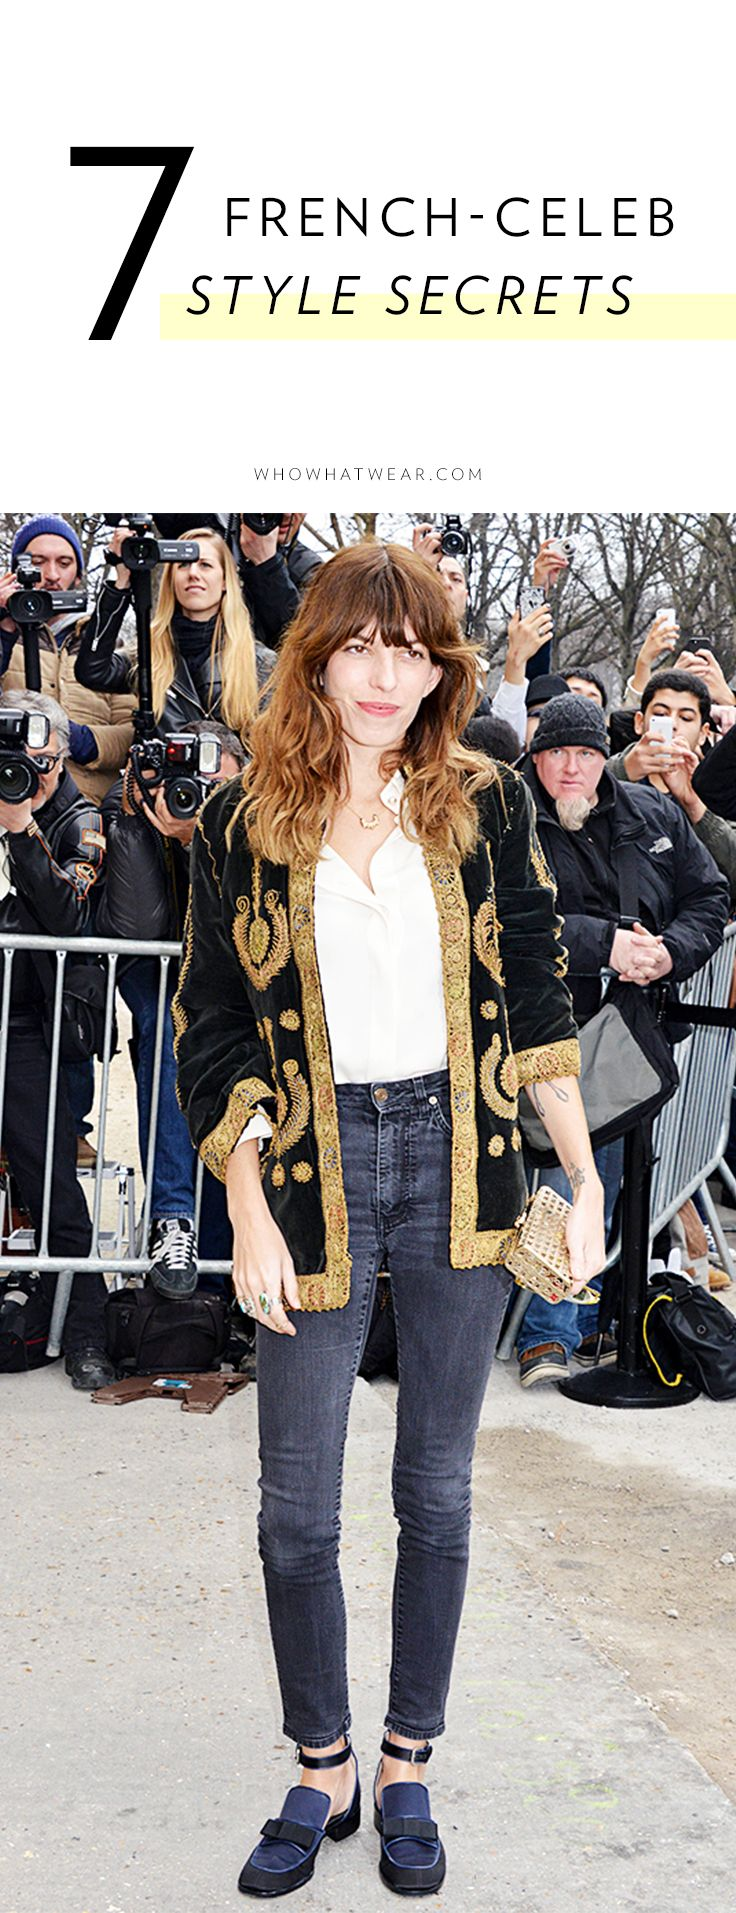 7 Style Secrets from Frances Most Fashionable Celebs